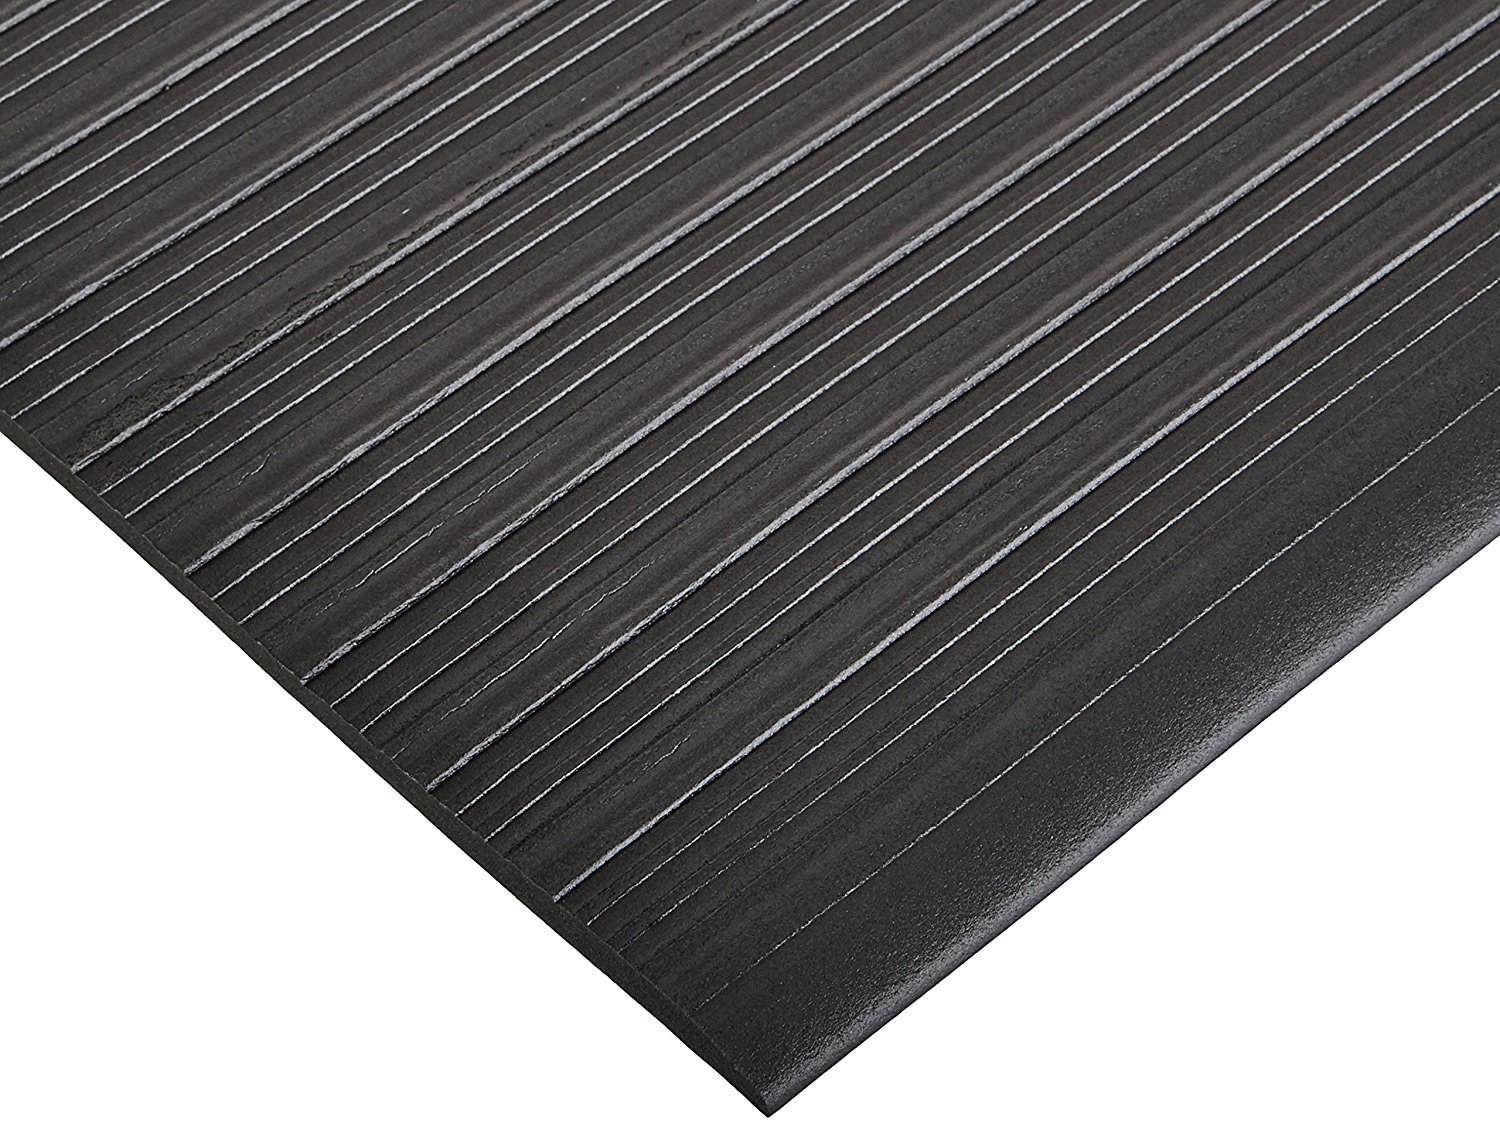 Bertech Anti Fatigue Vinyl Foam Floor Mat, 3' Wide x 20' Long x 3/8'' Thick, Ribbed Pattern, Black (Made in USA) by Bertech (Image #4)